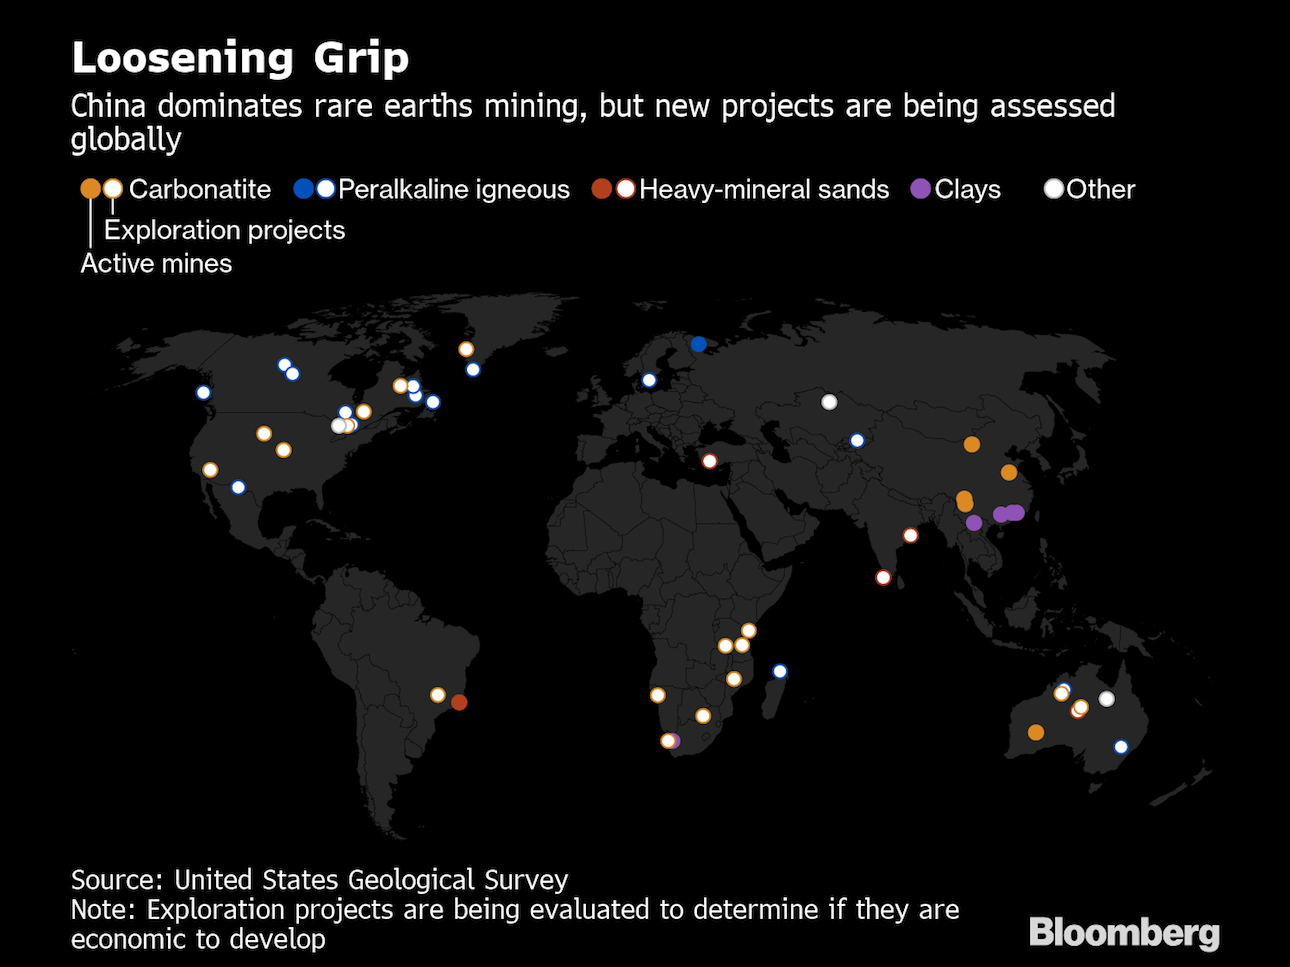 U.S. Risks 'Devastating' Blow From China's Rare Earths Monopoly